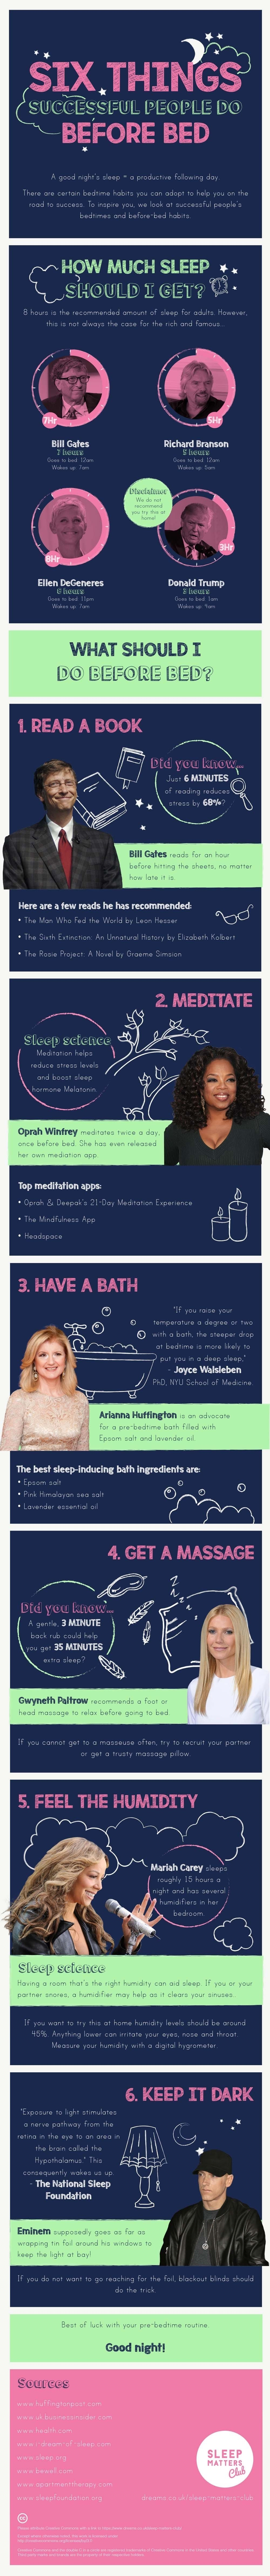 Six Things Successful People Do Before Bed